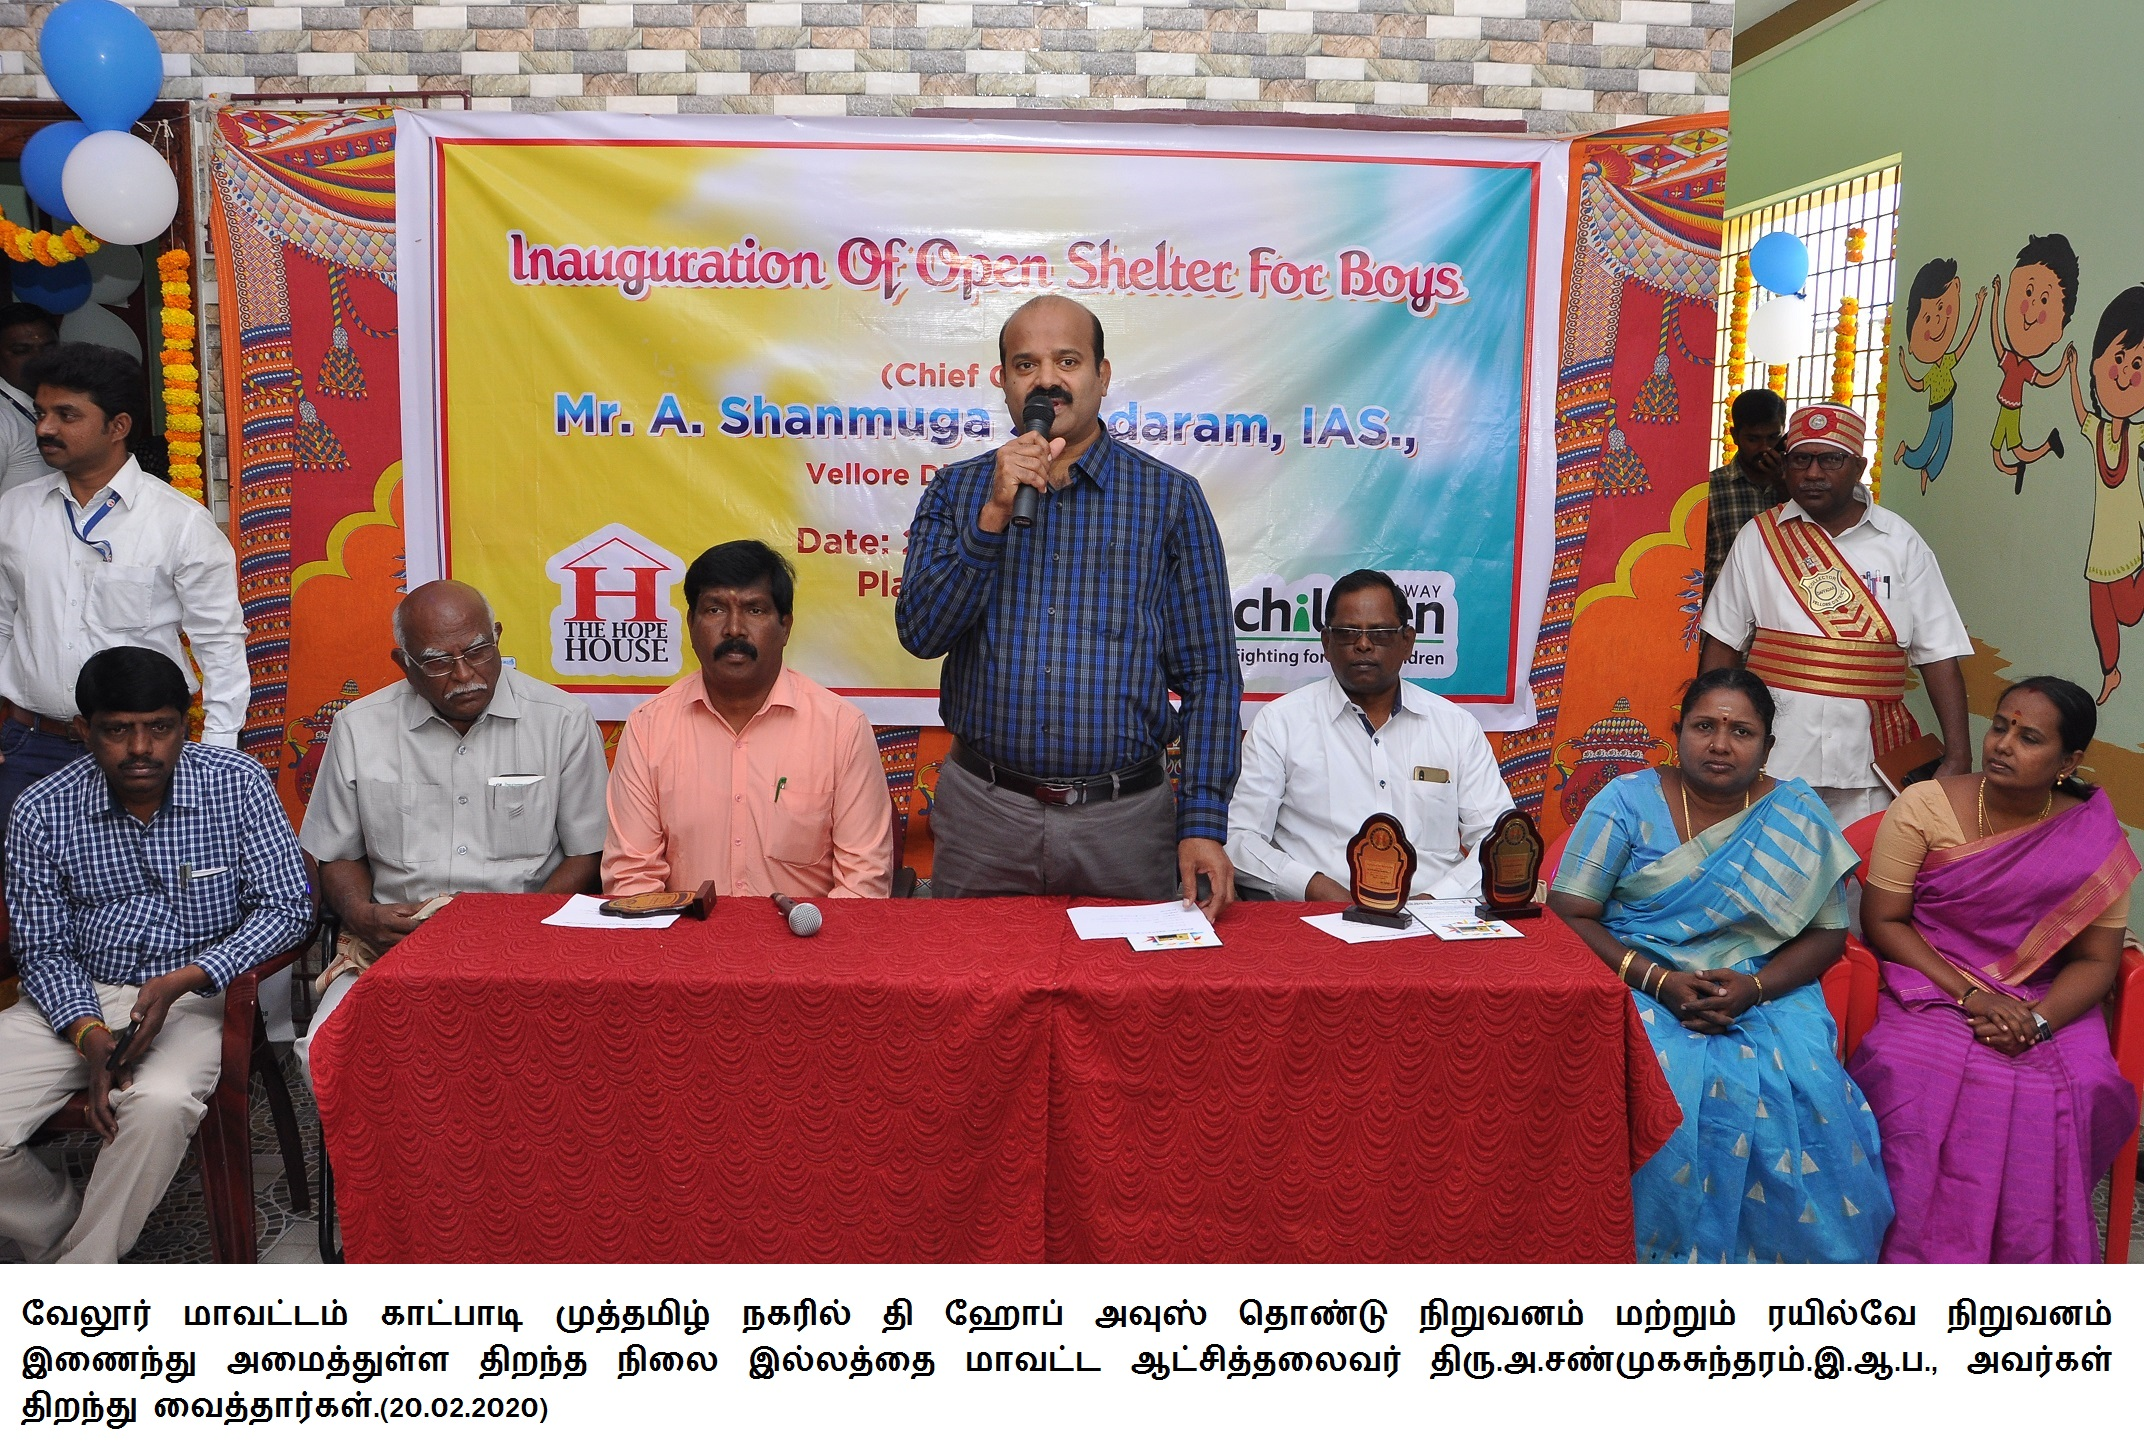 District Collector Inaugurated the Open Shelter for Boys at Katpadi